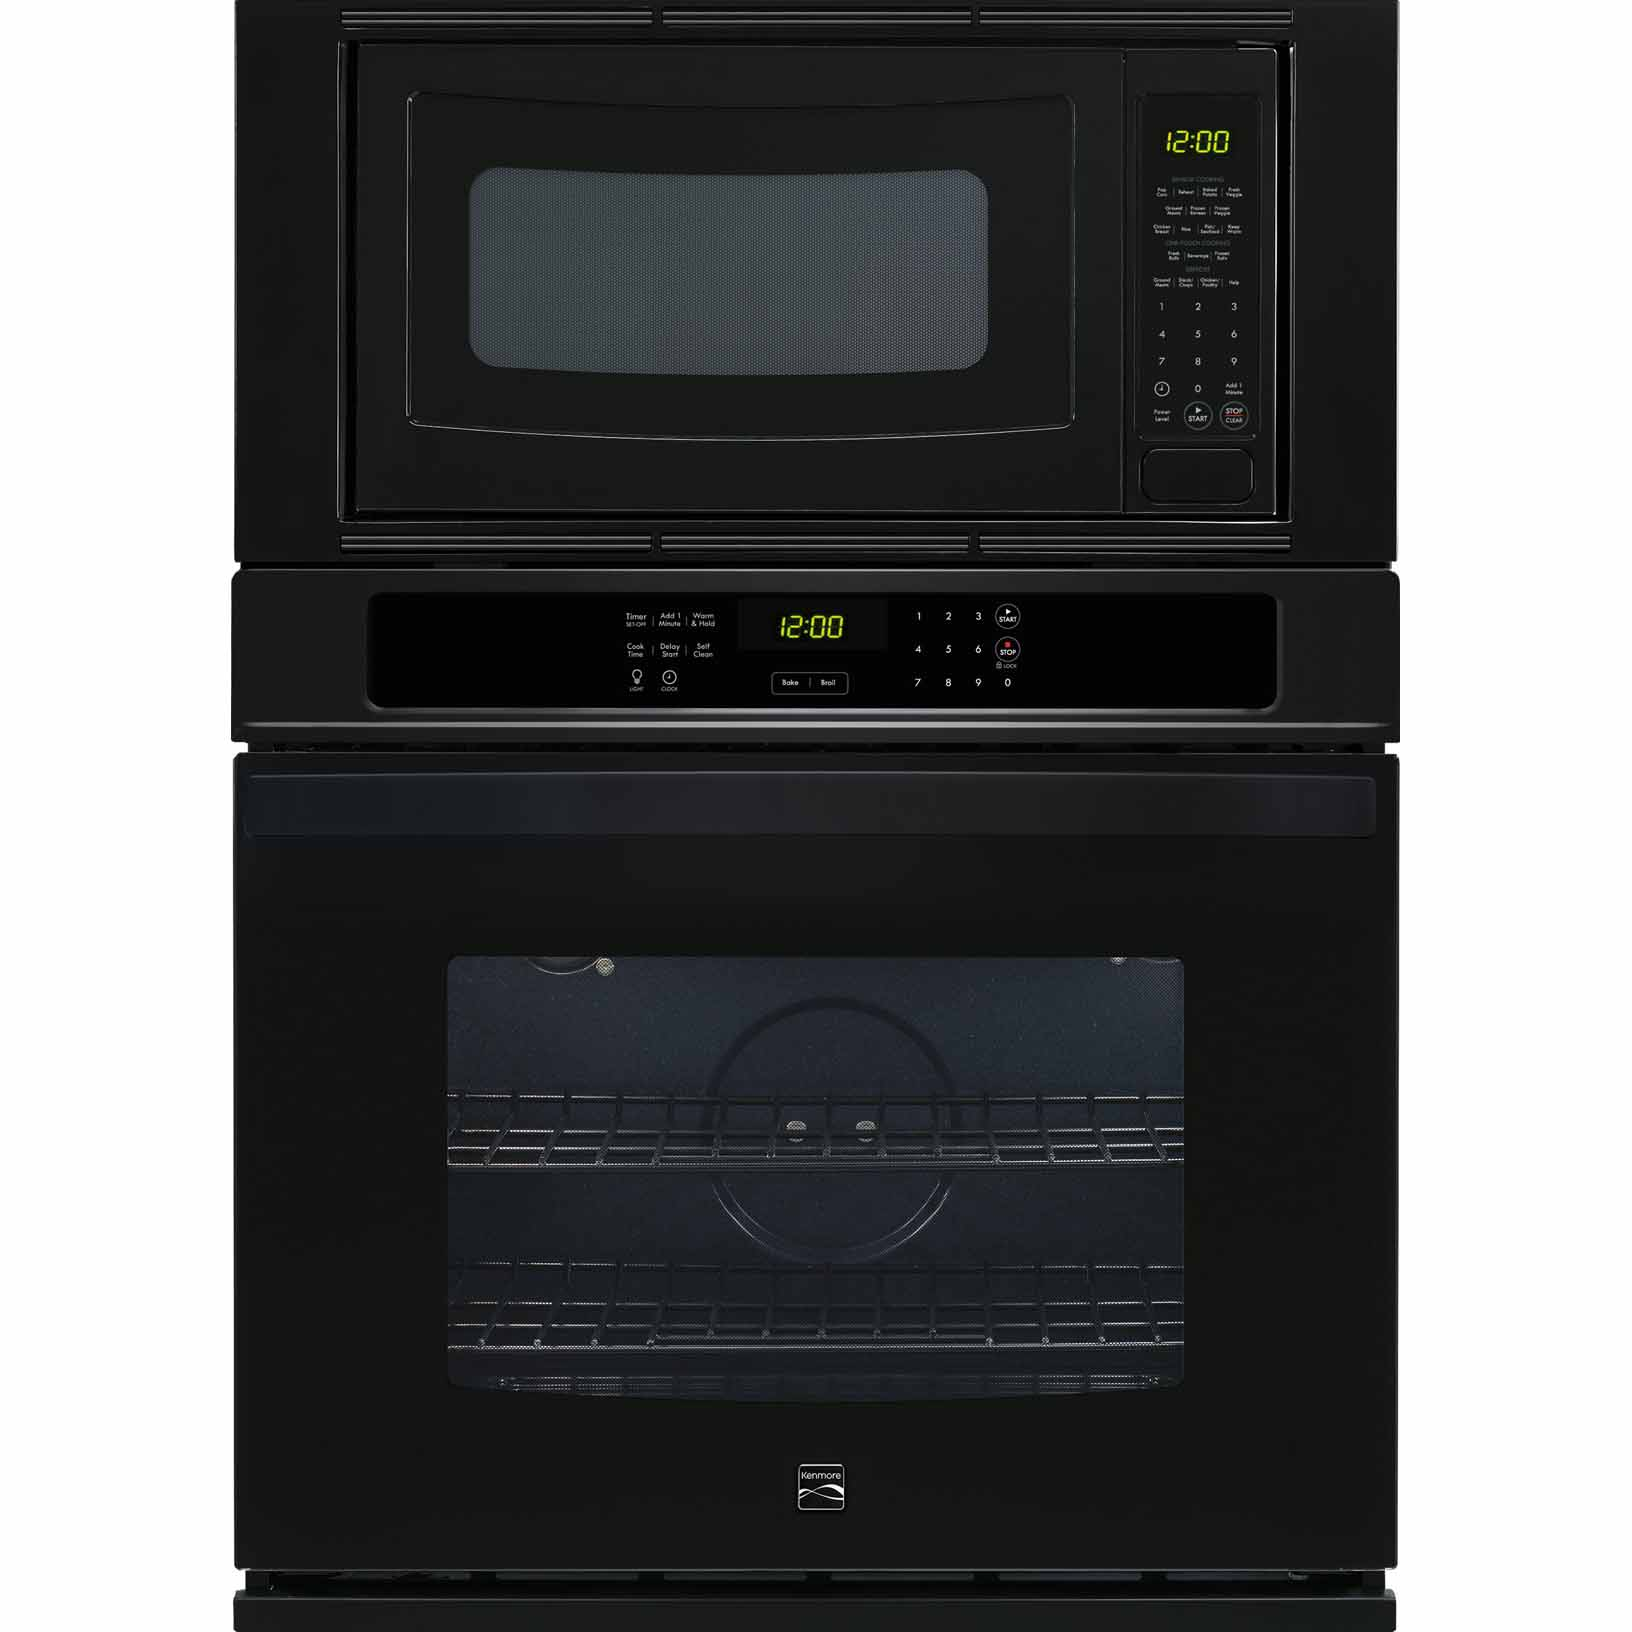 Kenmore 49609 27 Electric Combination Wall Oven - Black